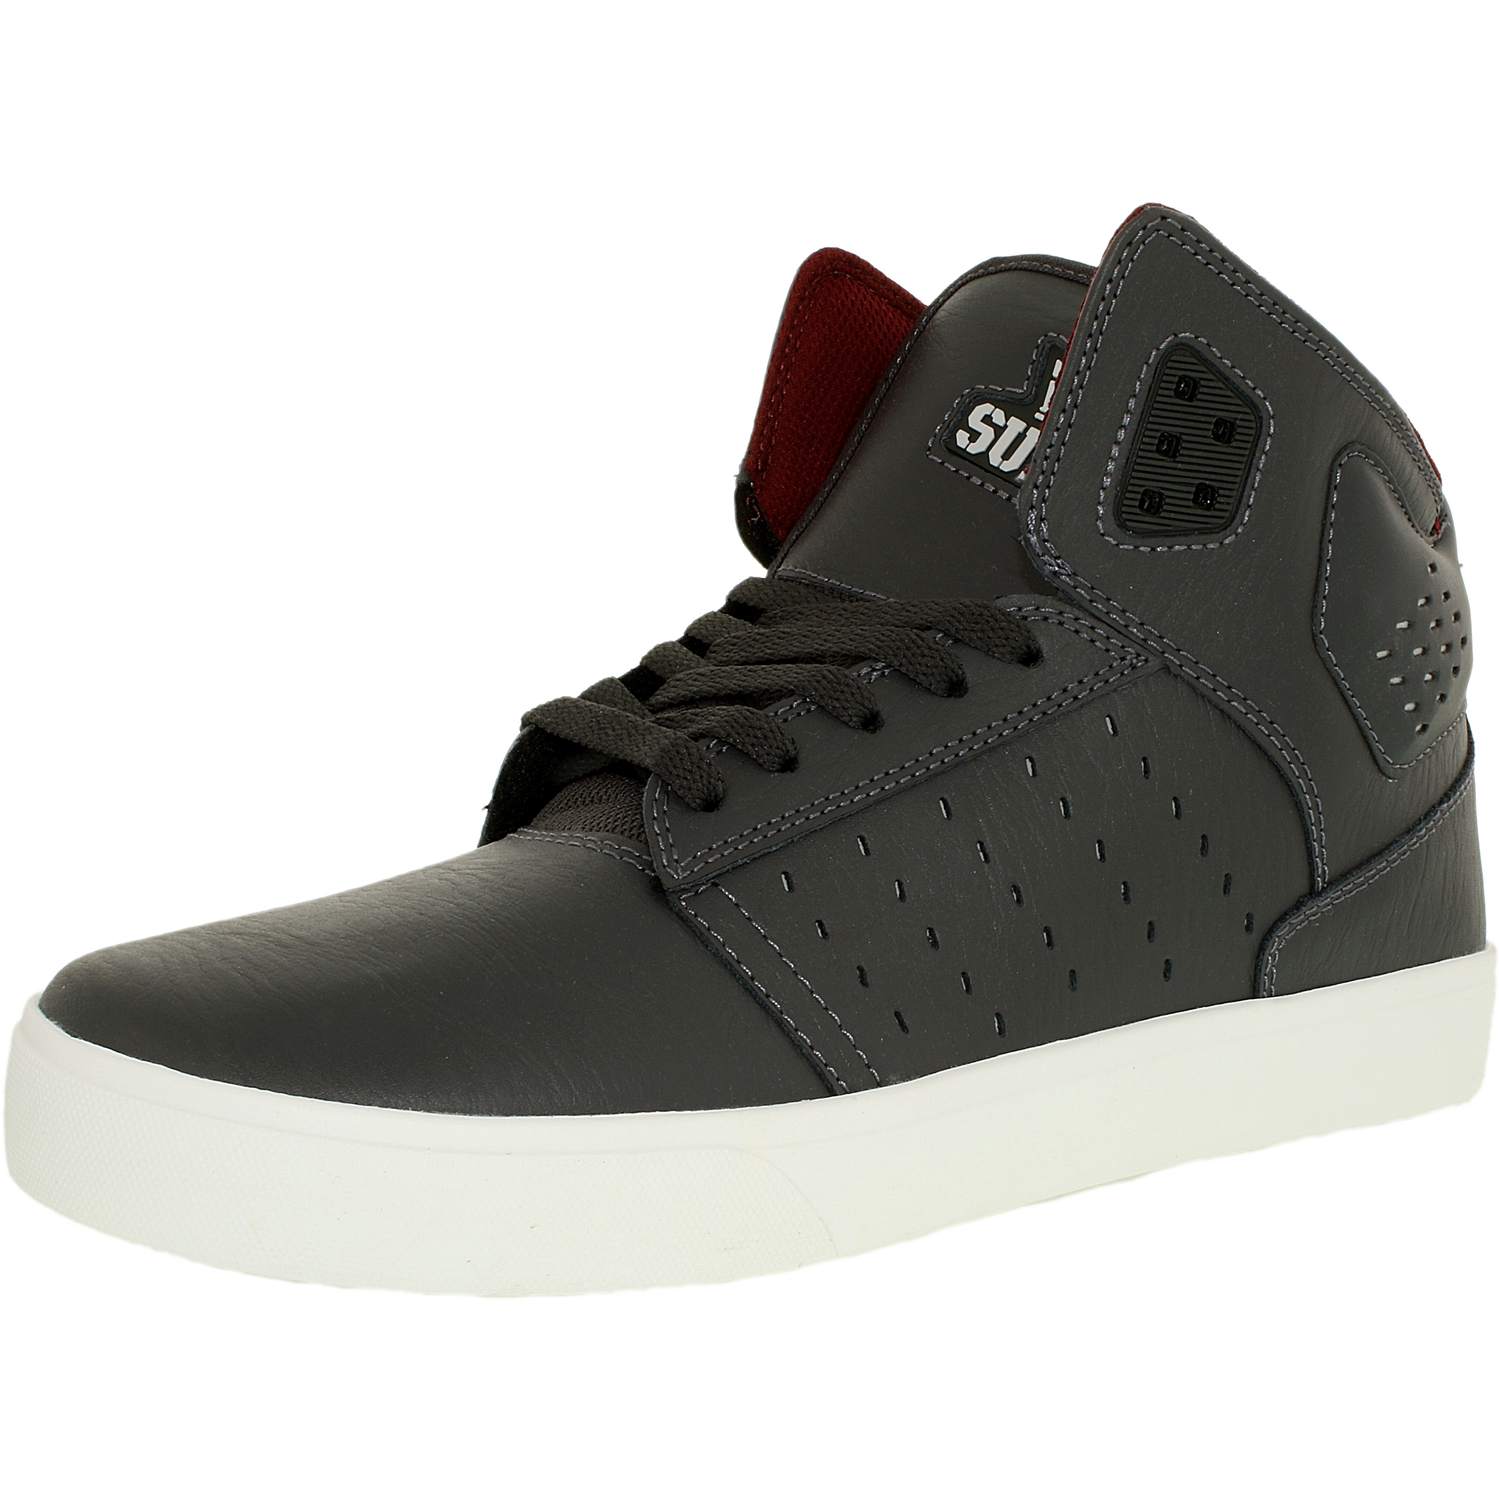 e136cdc0716a Supra Men s Atom Magnet White High-Top Suede Fashion Sneaker - 9.5M